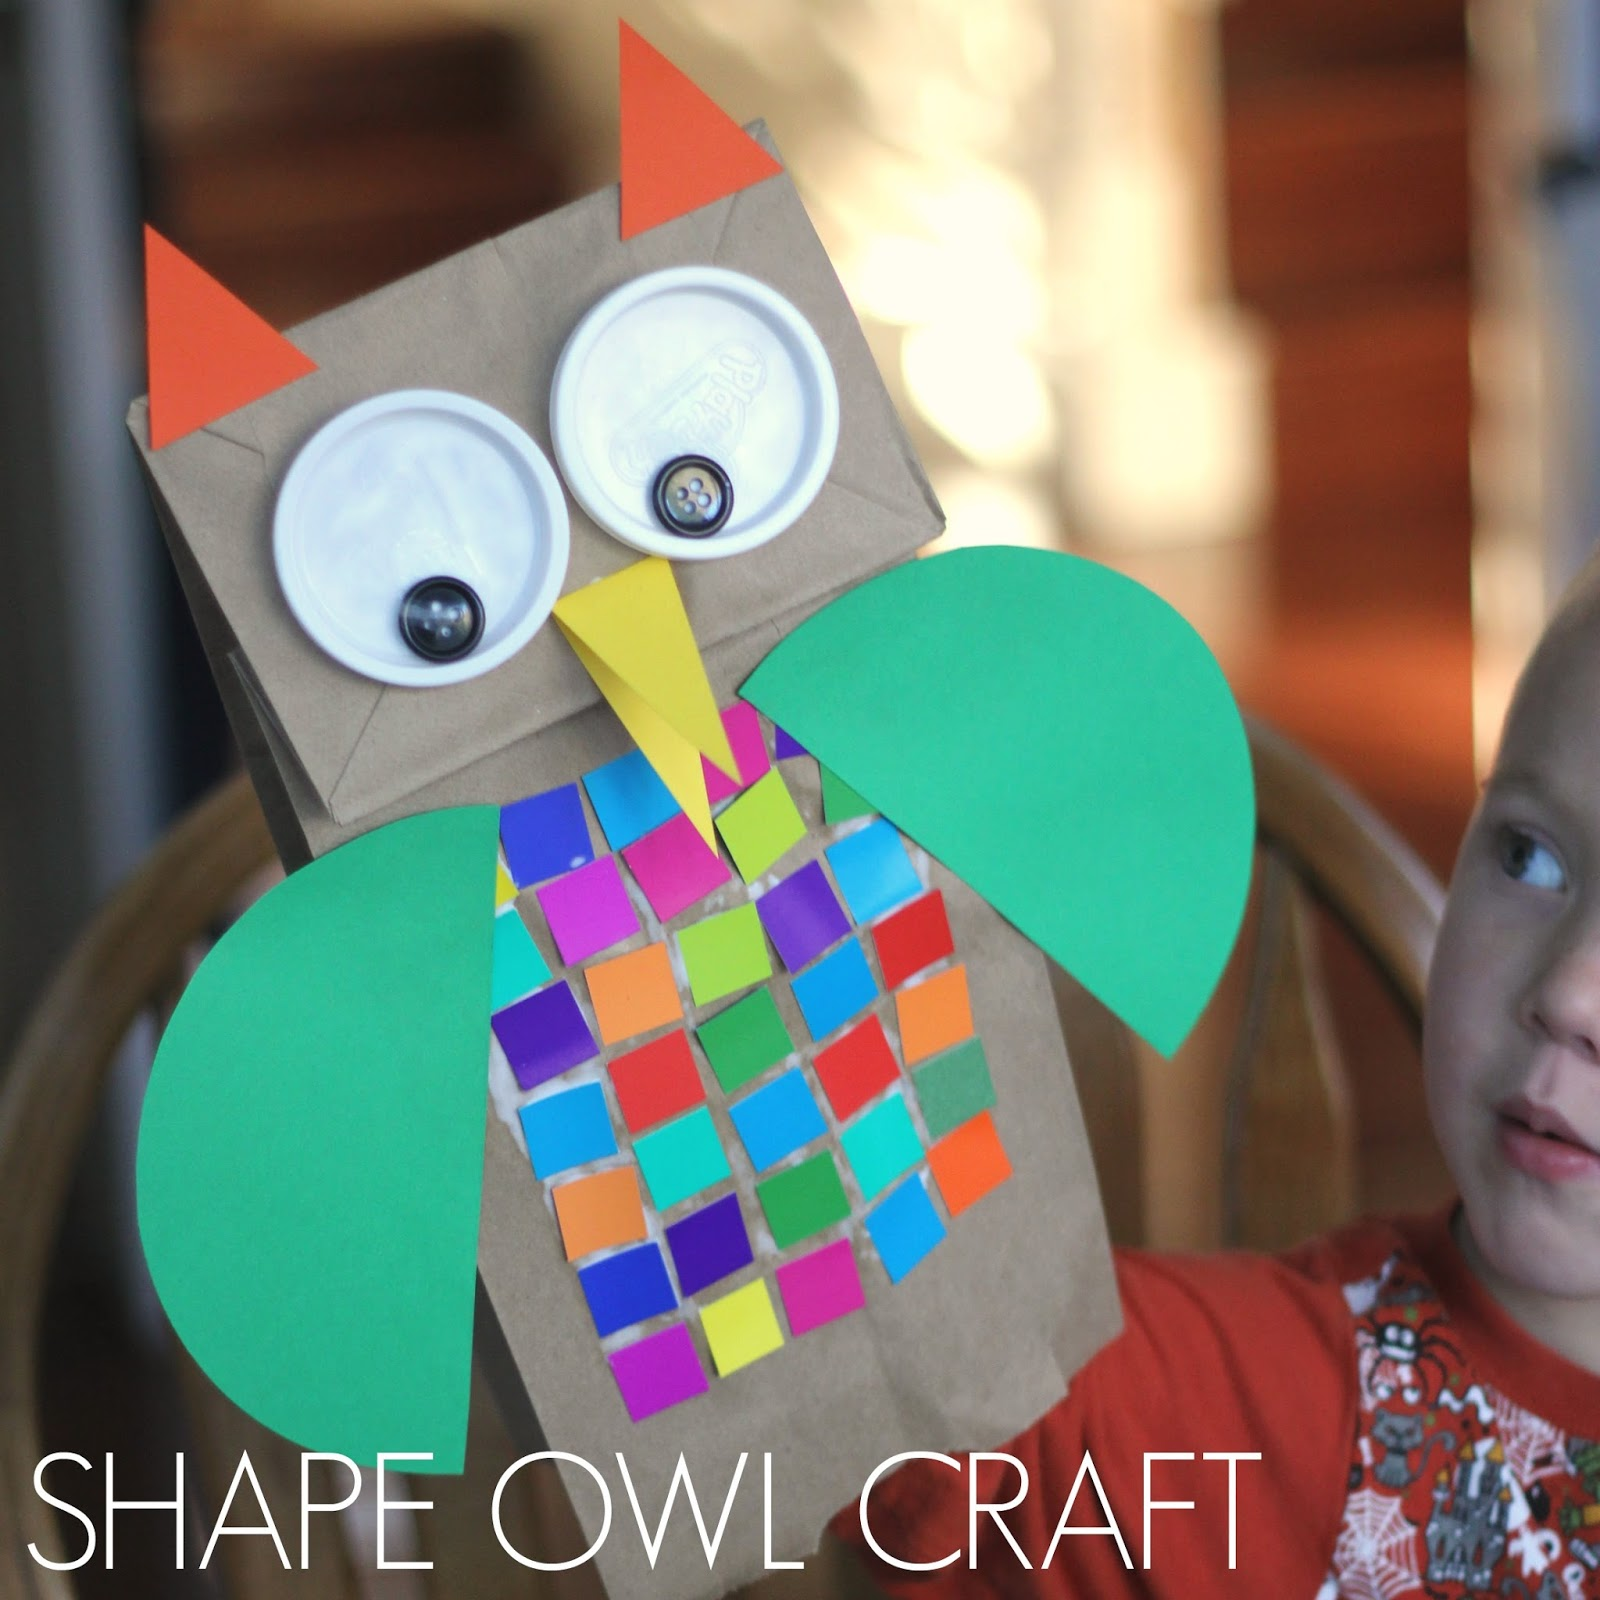 Toddler approved colorful shape owl craft for kids our featured book this week is owl babies by martin waddell and we decided to do an owl themed puppet craft to go along with the book jeuxipadfo Image collections